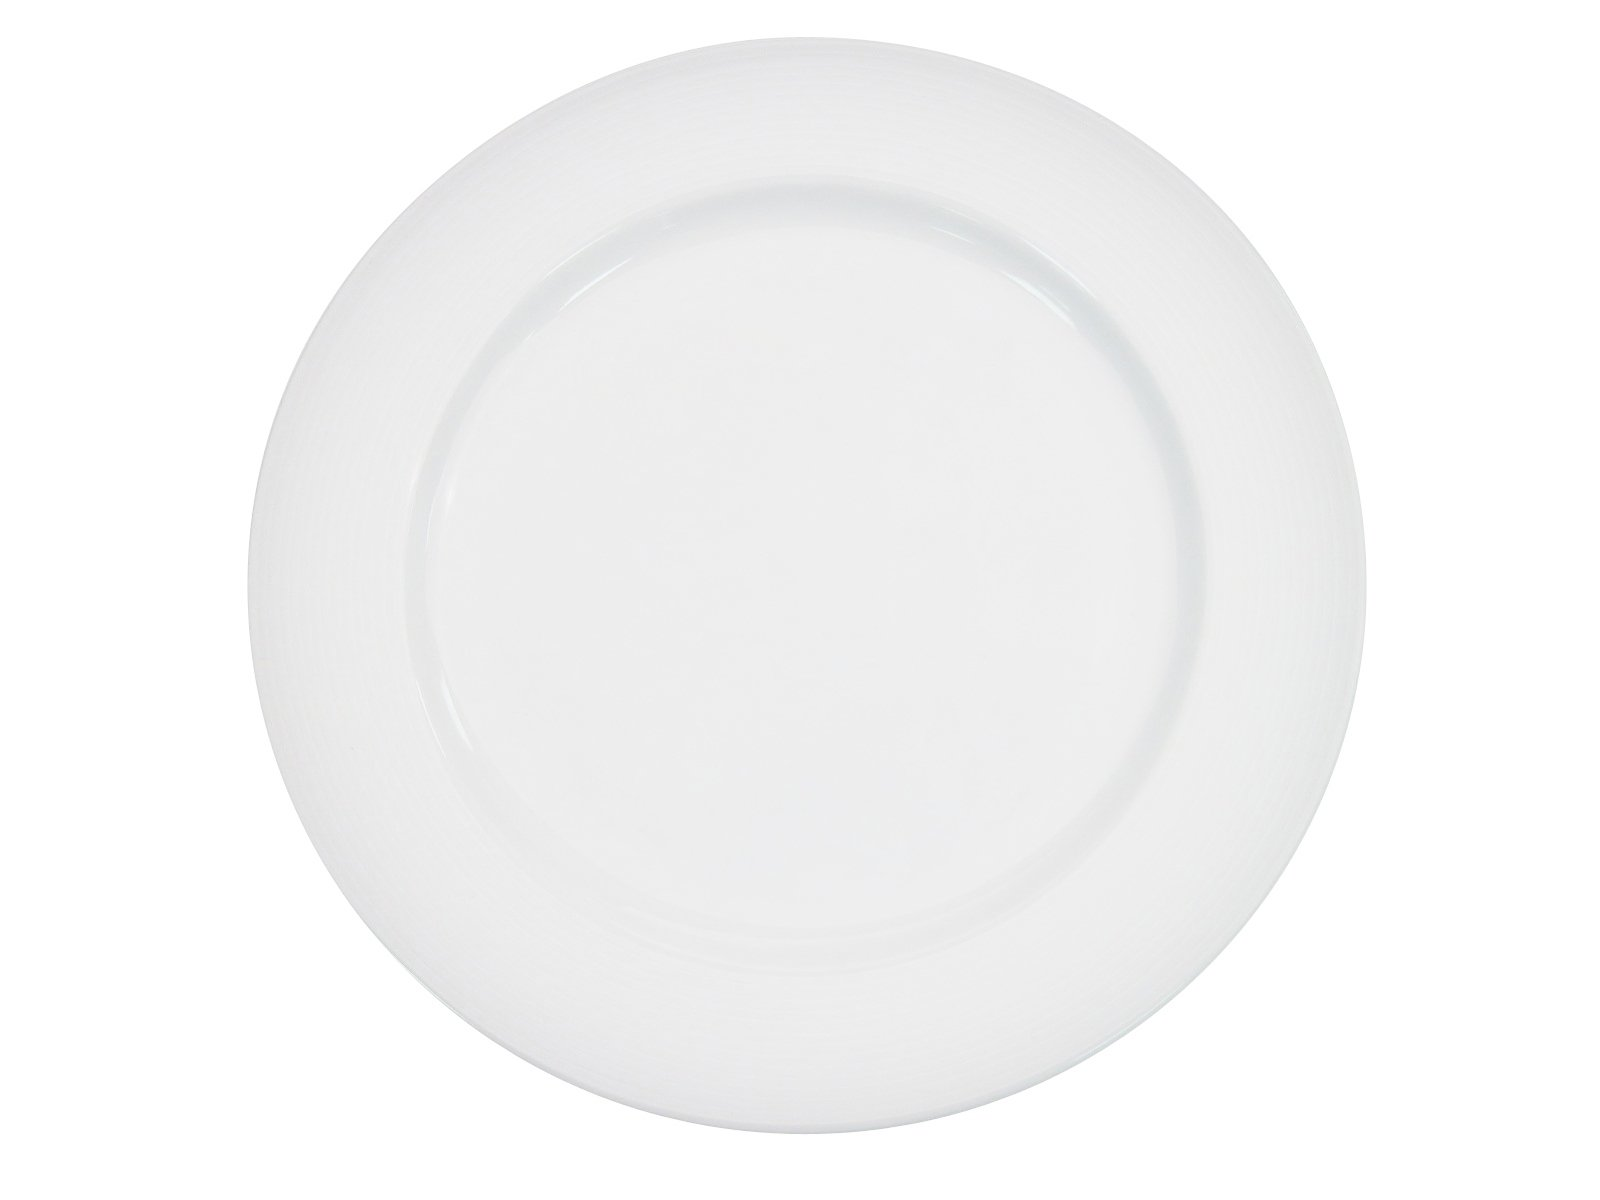 CAC China HMY-7 7-1/2-Inch Harmony Porcelain Plate, White, Box of 36